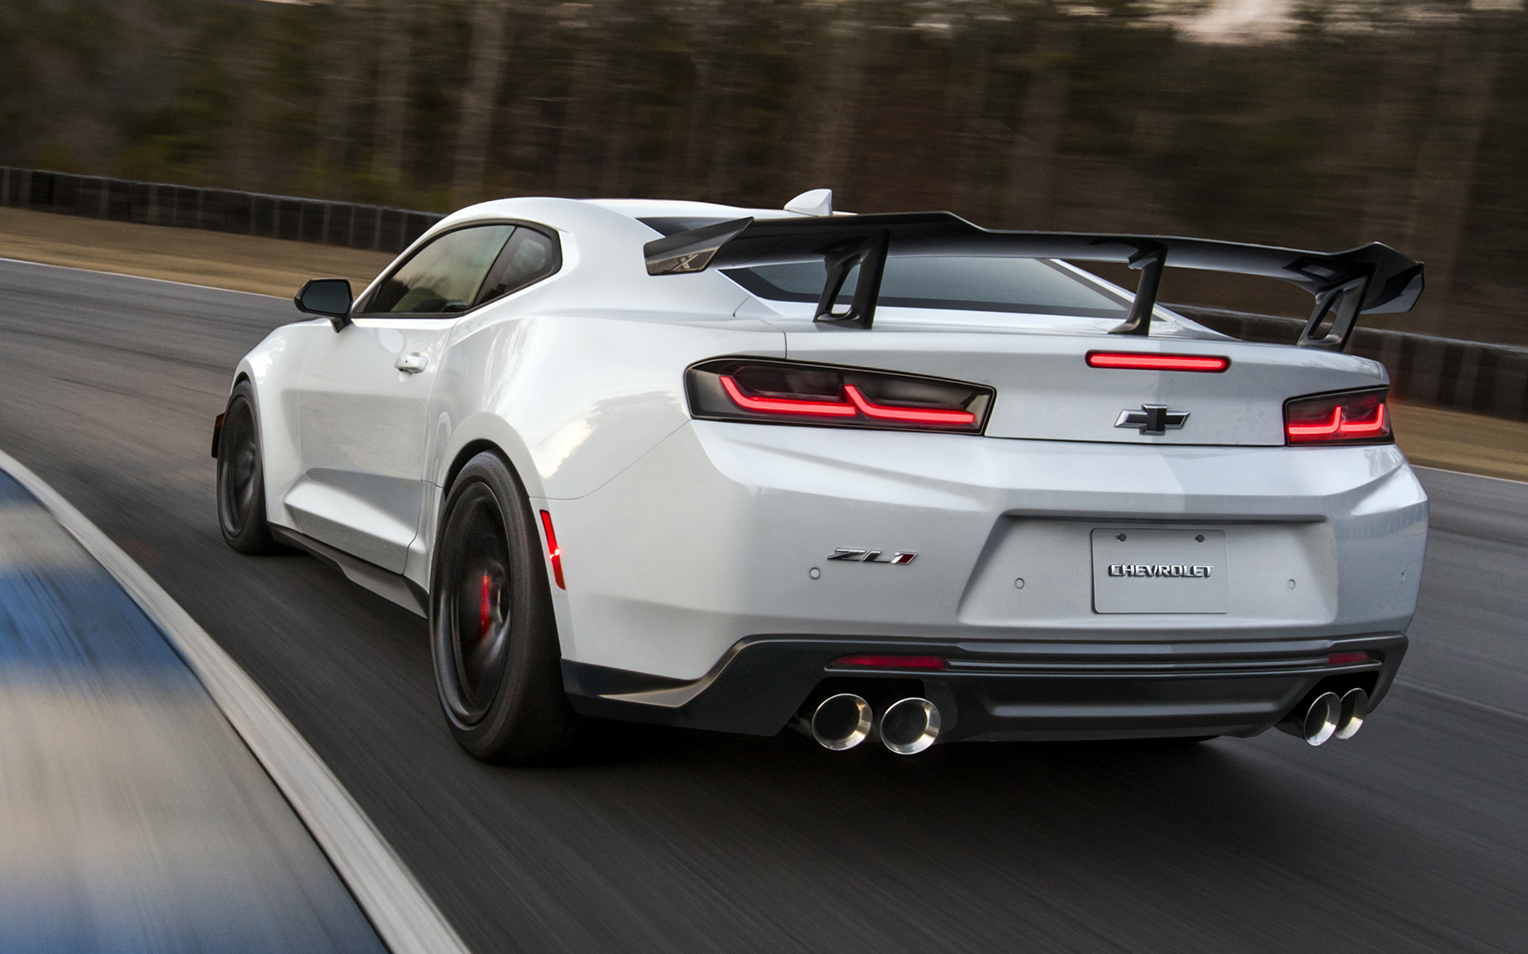 Chevrolet Camaro Zl1 1le 2018 Fotos E Especifica 231 245 Es Car Blog Br